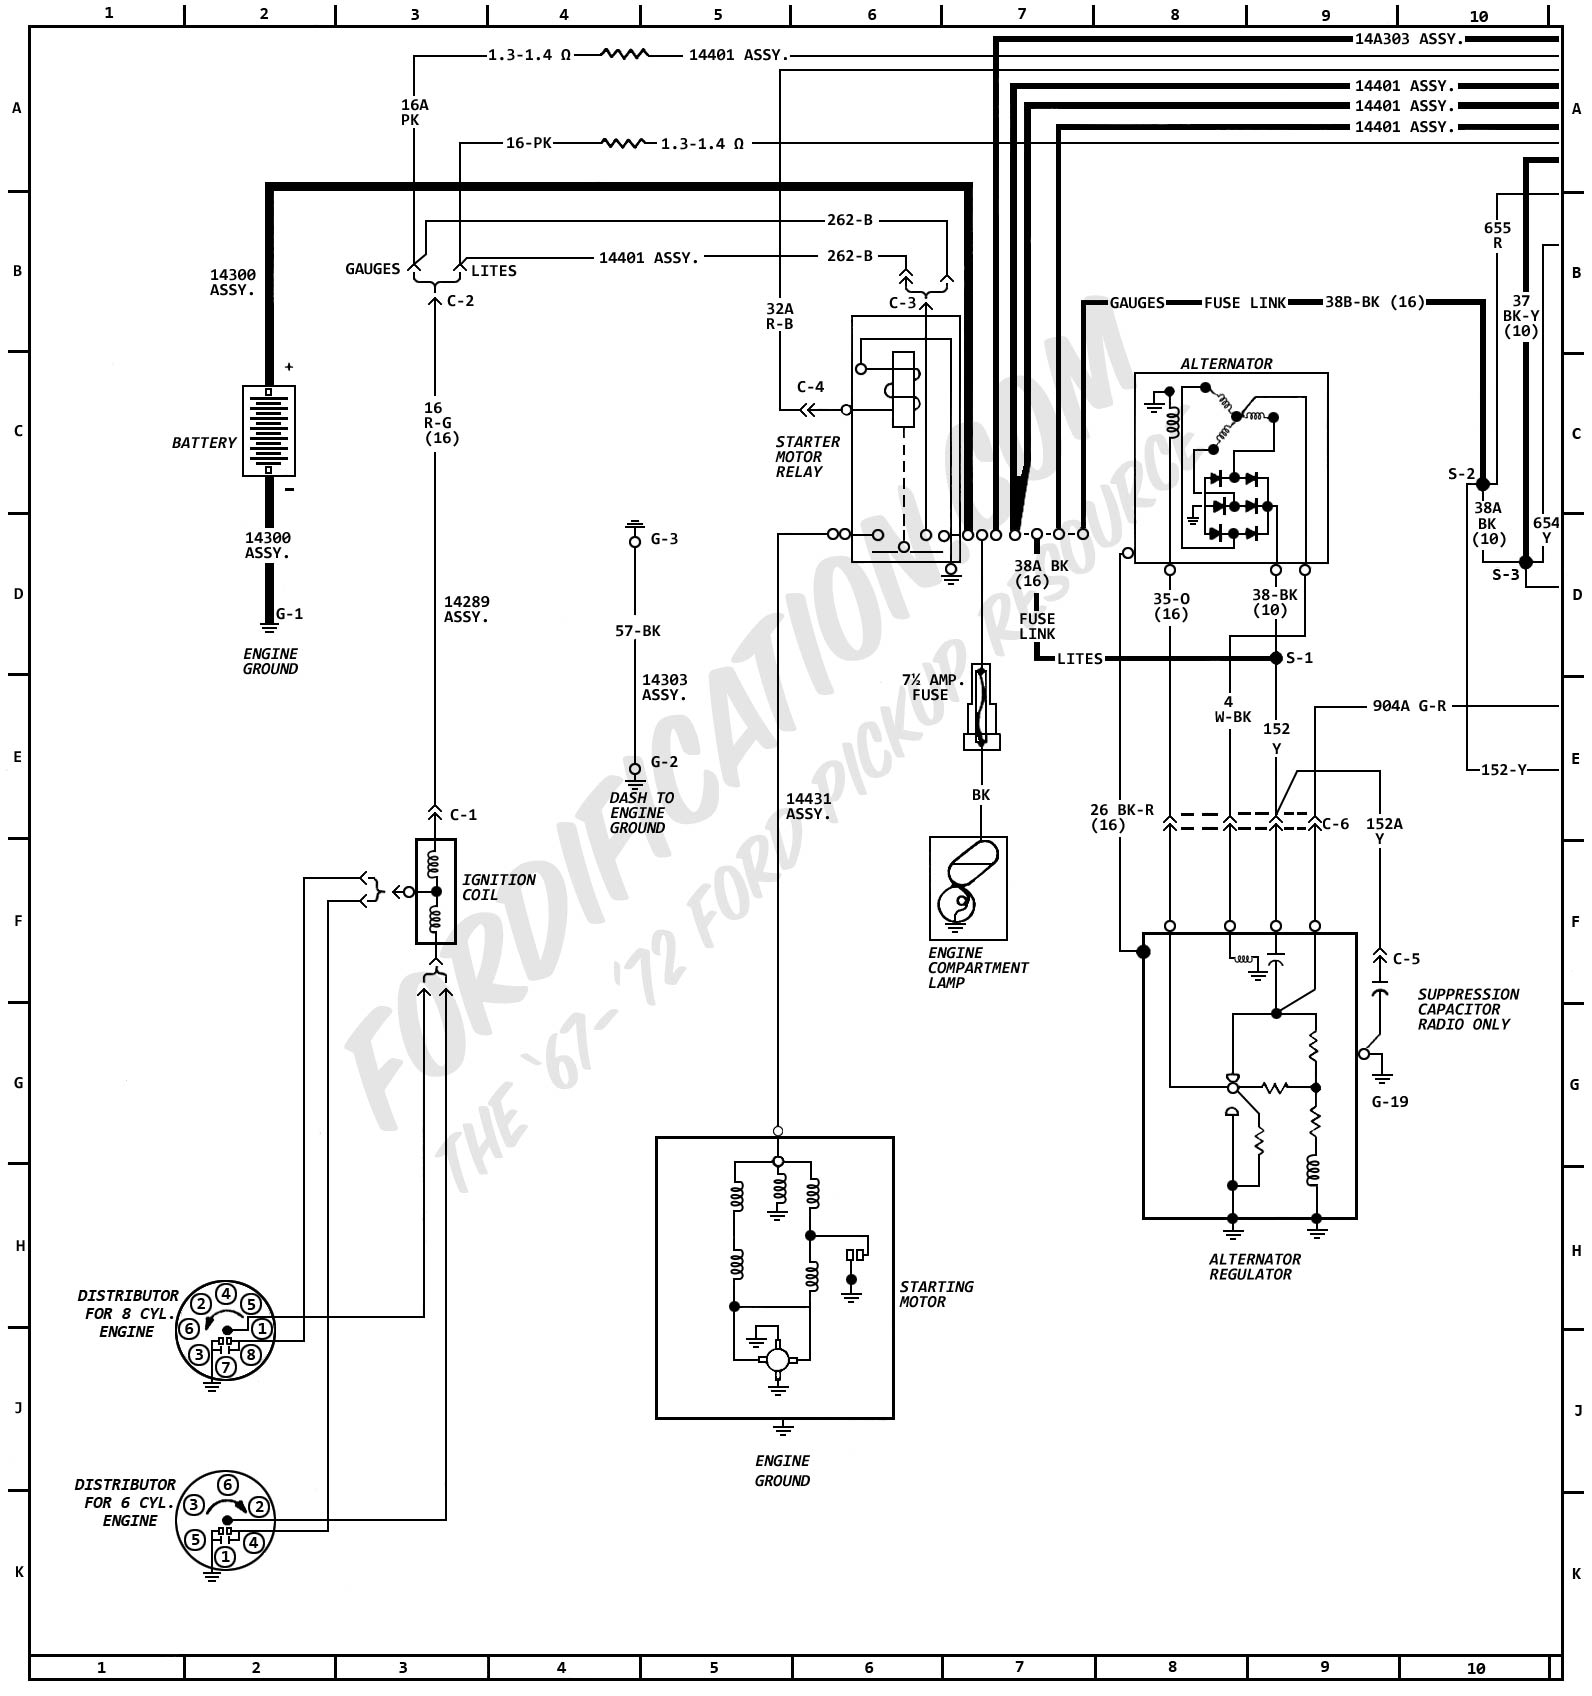 1971 ford f250 wiring diagram 1971 ford f250 wiring diagram wiring diagram data  1971 ford f250 wiring diagram wiring